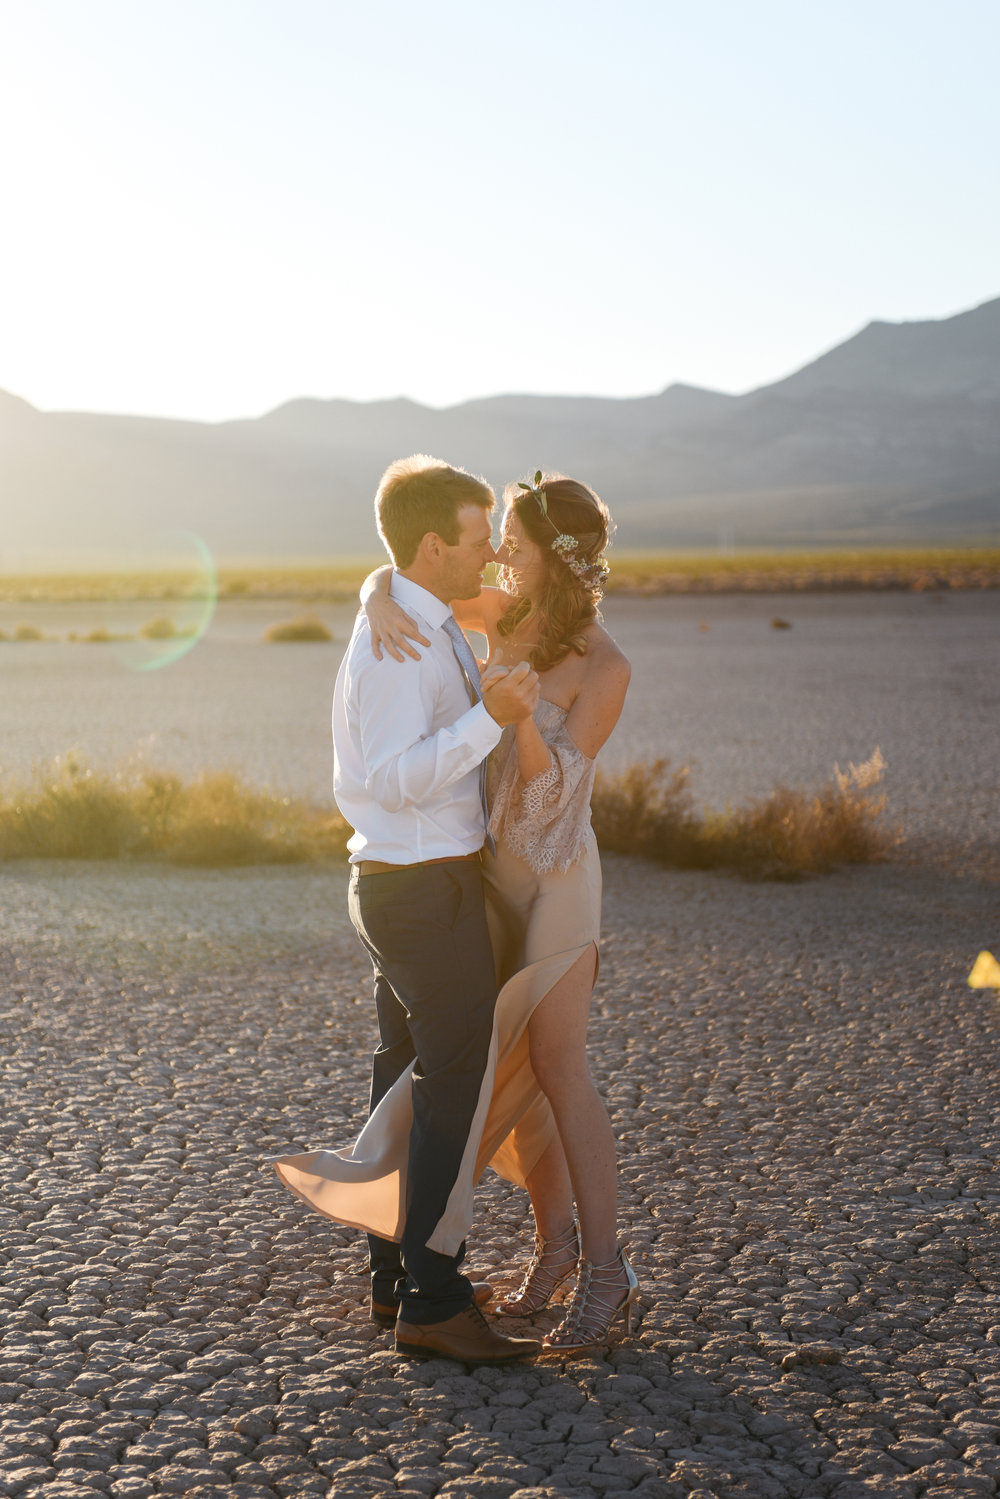 pop up wedding elopement photography las vegas wedding photography ashley marie meyrs-202 copy.jpg